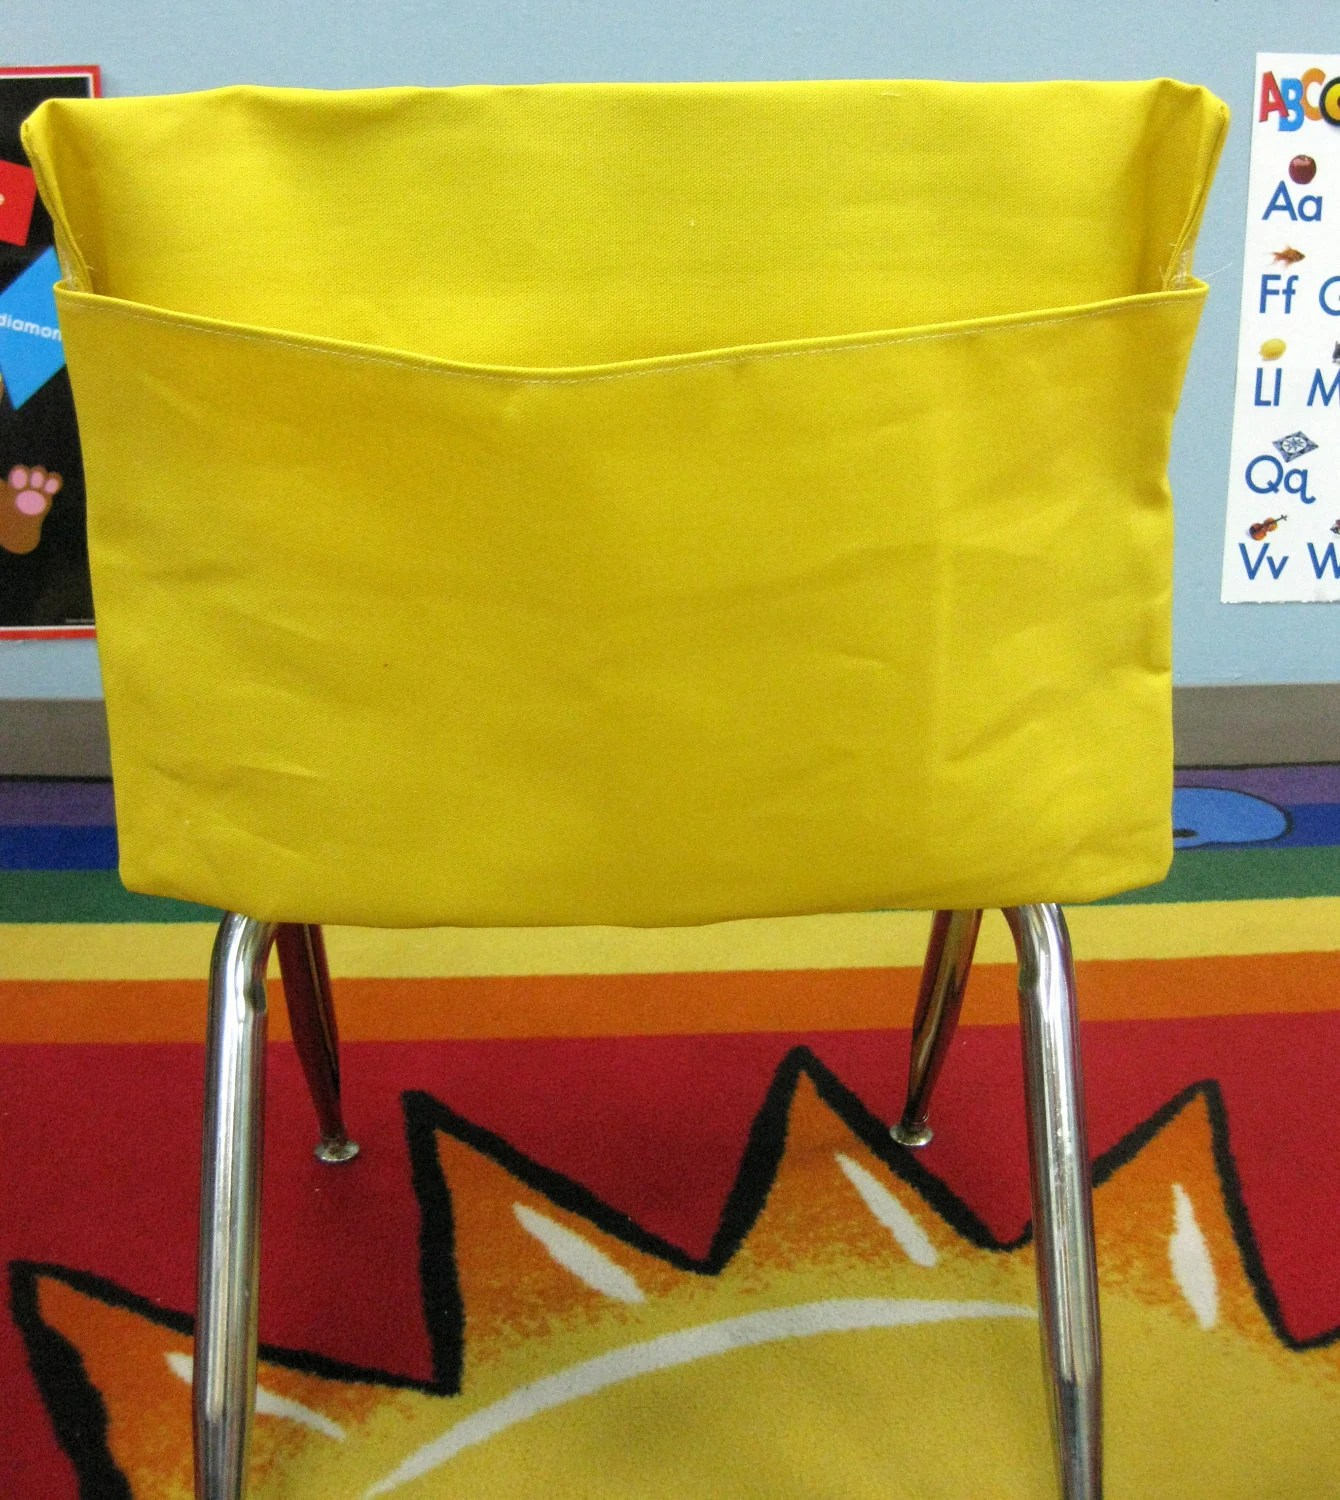 Chair Pocket 1 Small Yellow Classroom Chair Pockets Seat Sacks Desk